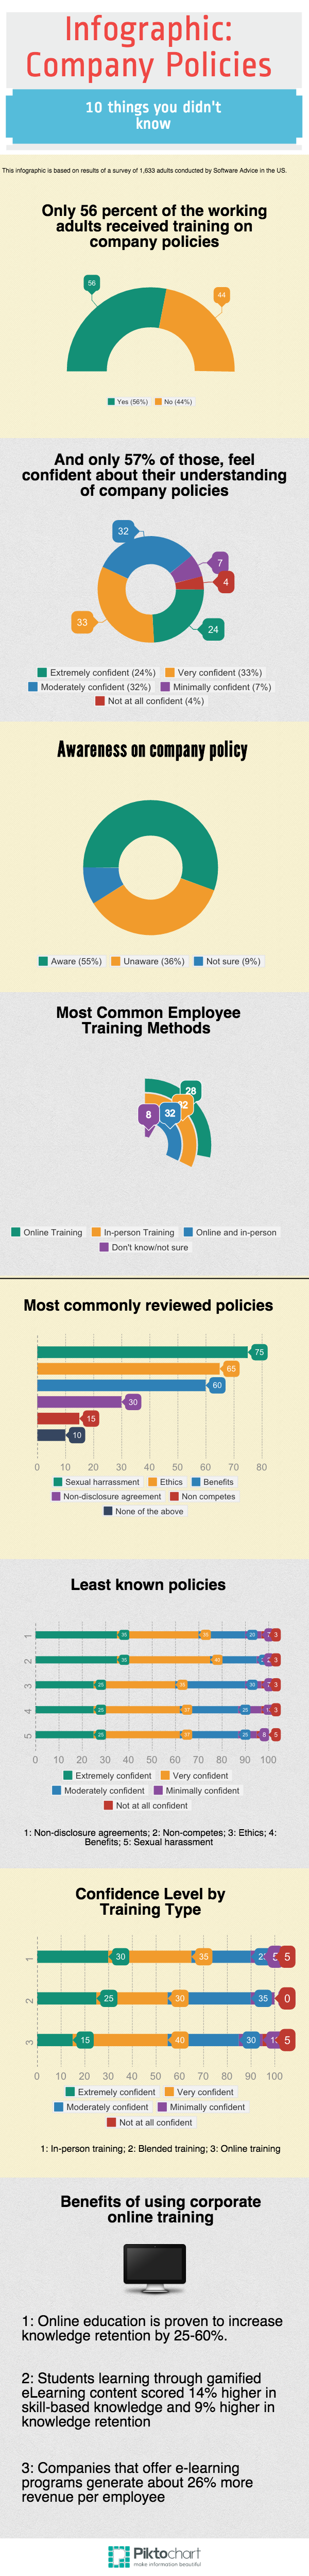 Employee Awareness Of Company Policies Infographic  Http